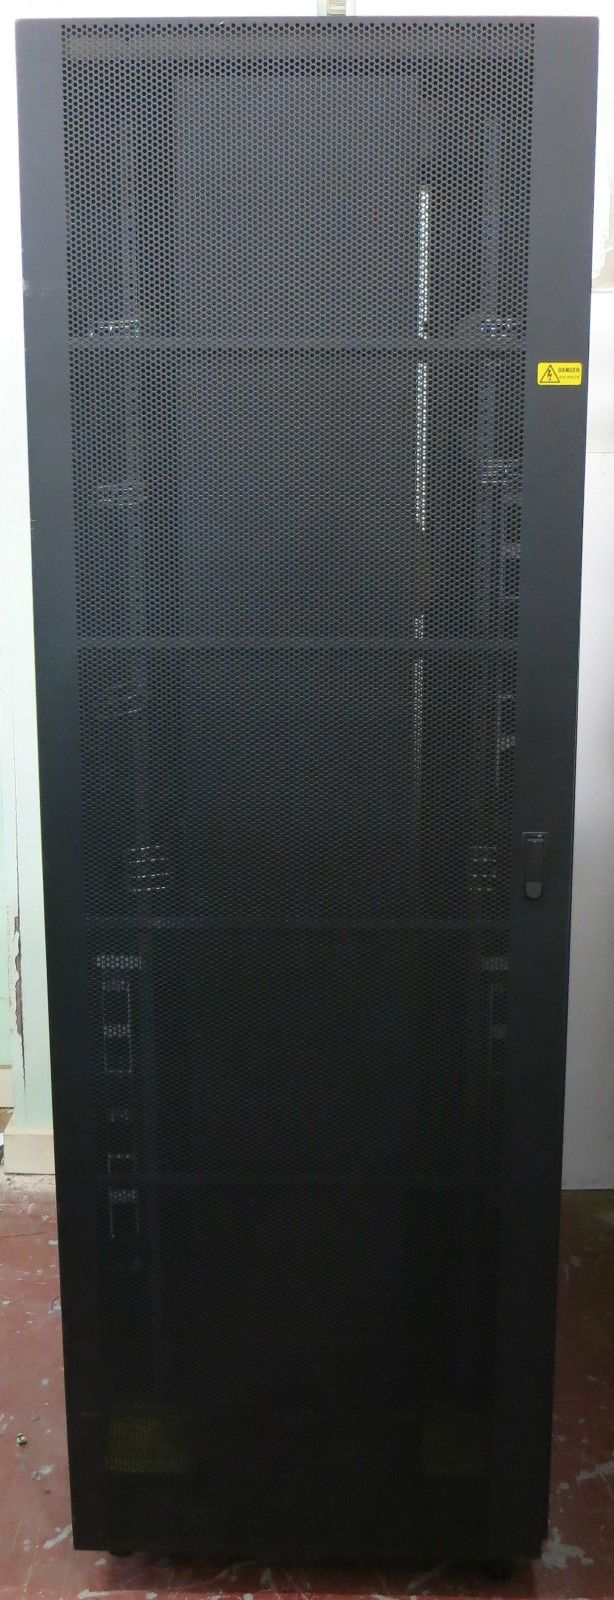 Ibm 7014 T42 42u Server Network Rack Cabinet Enclosure